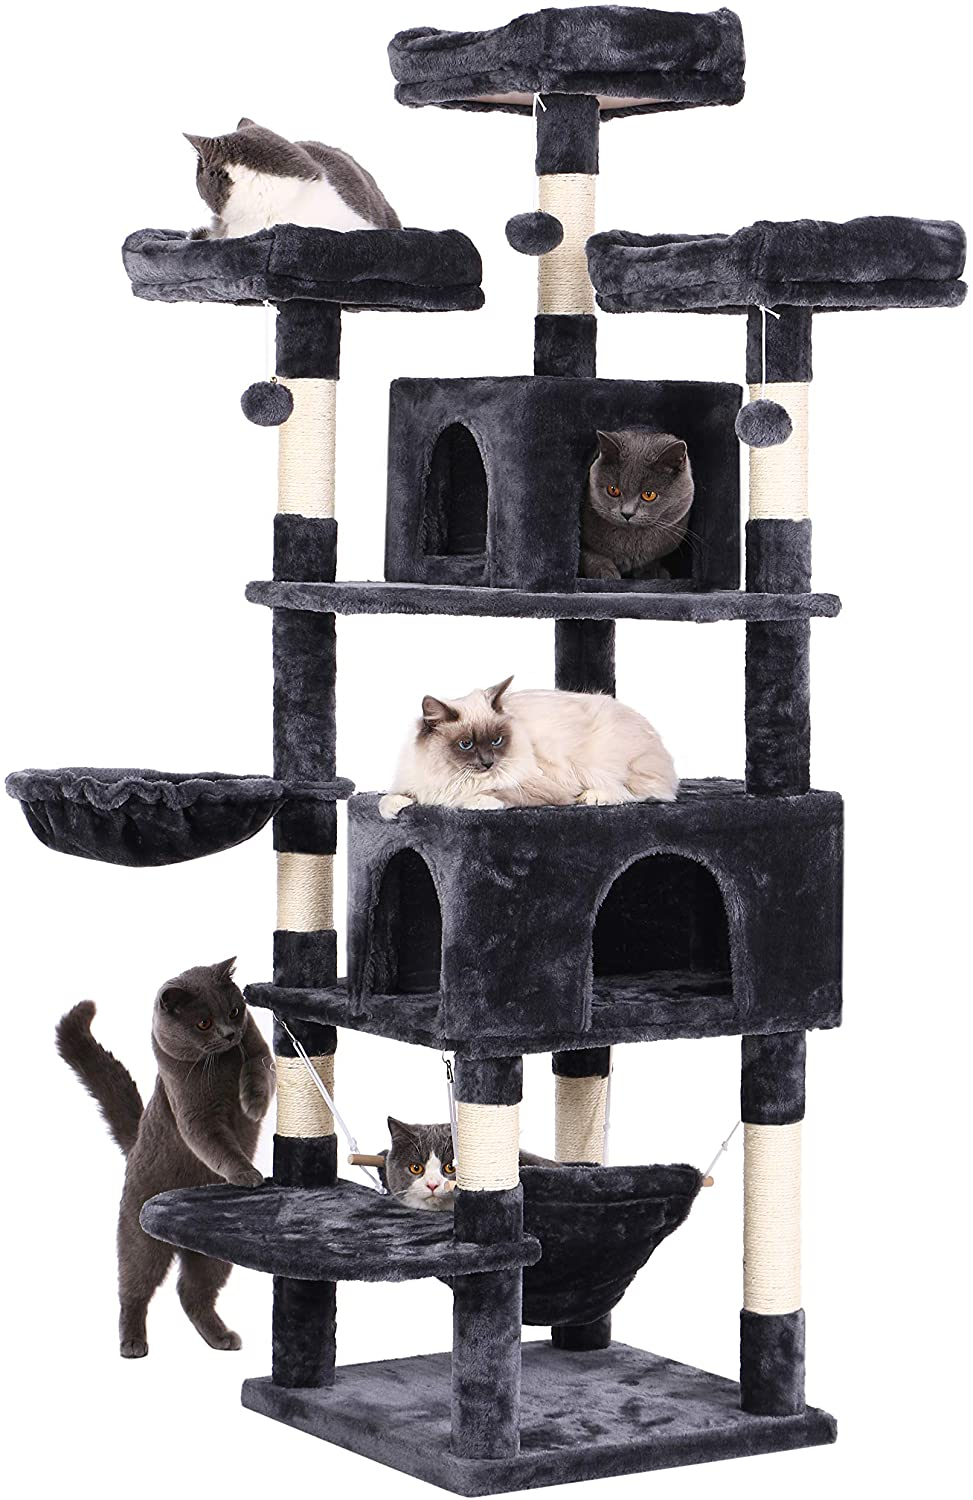 BEWSIHOME Cat Tree 66.3 Inch Multi-Level Large Cat Tower with Plush Top Perches, Sisal Scratching Post Cat Play House Kitty Activity Center MMJ14